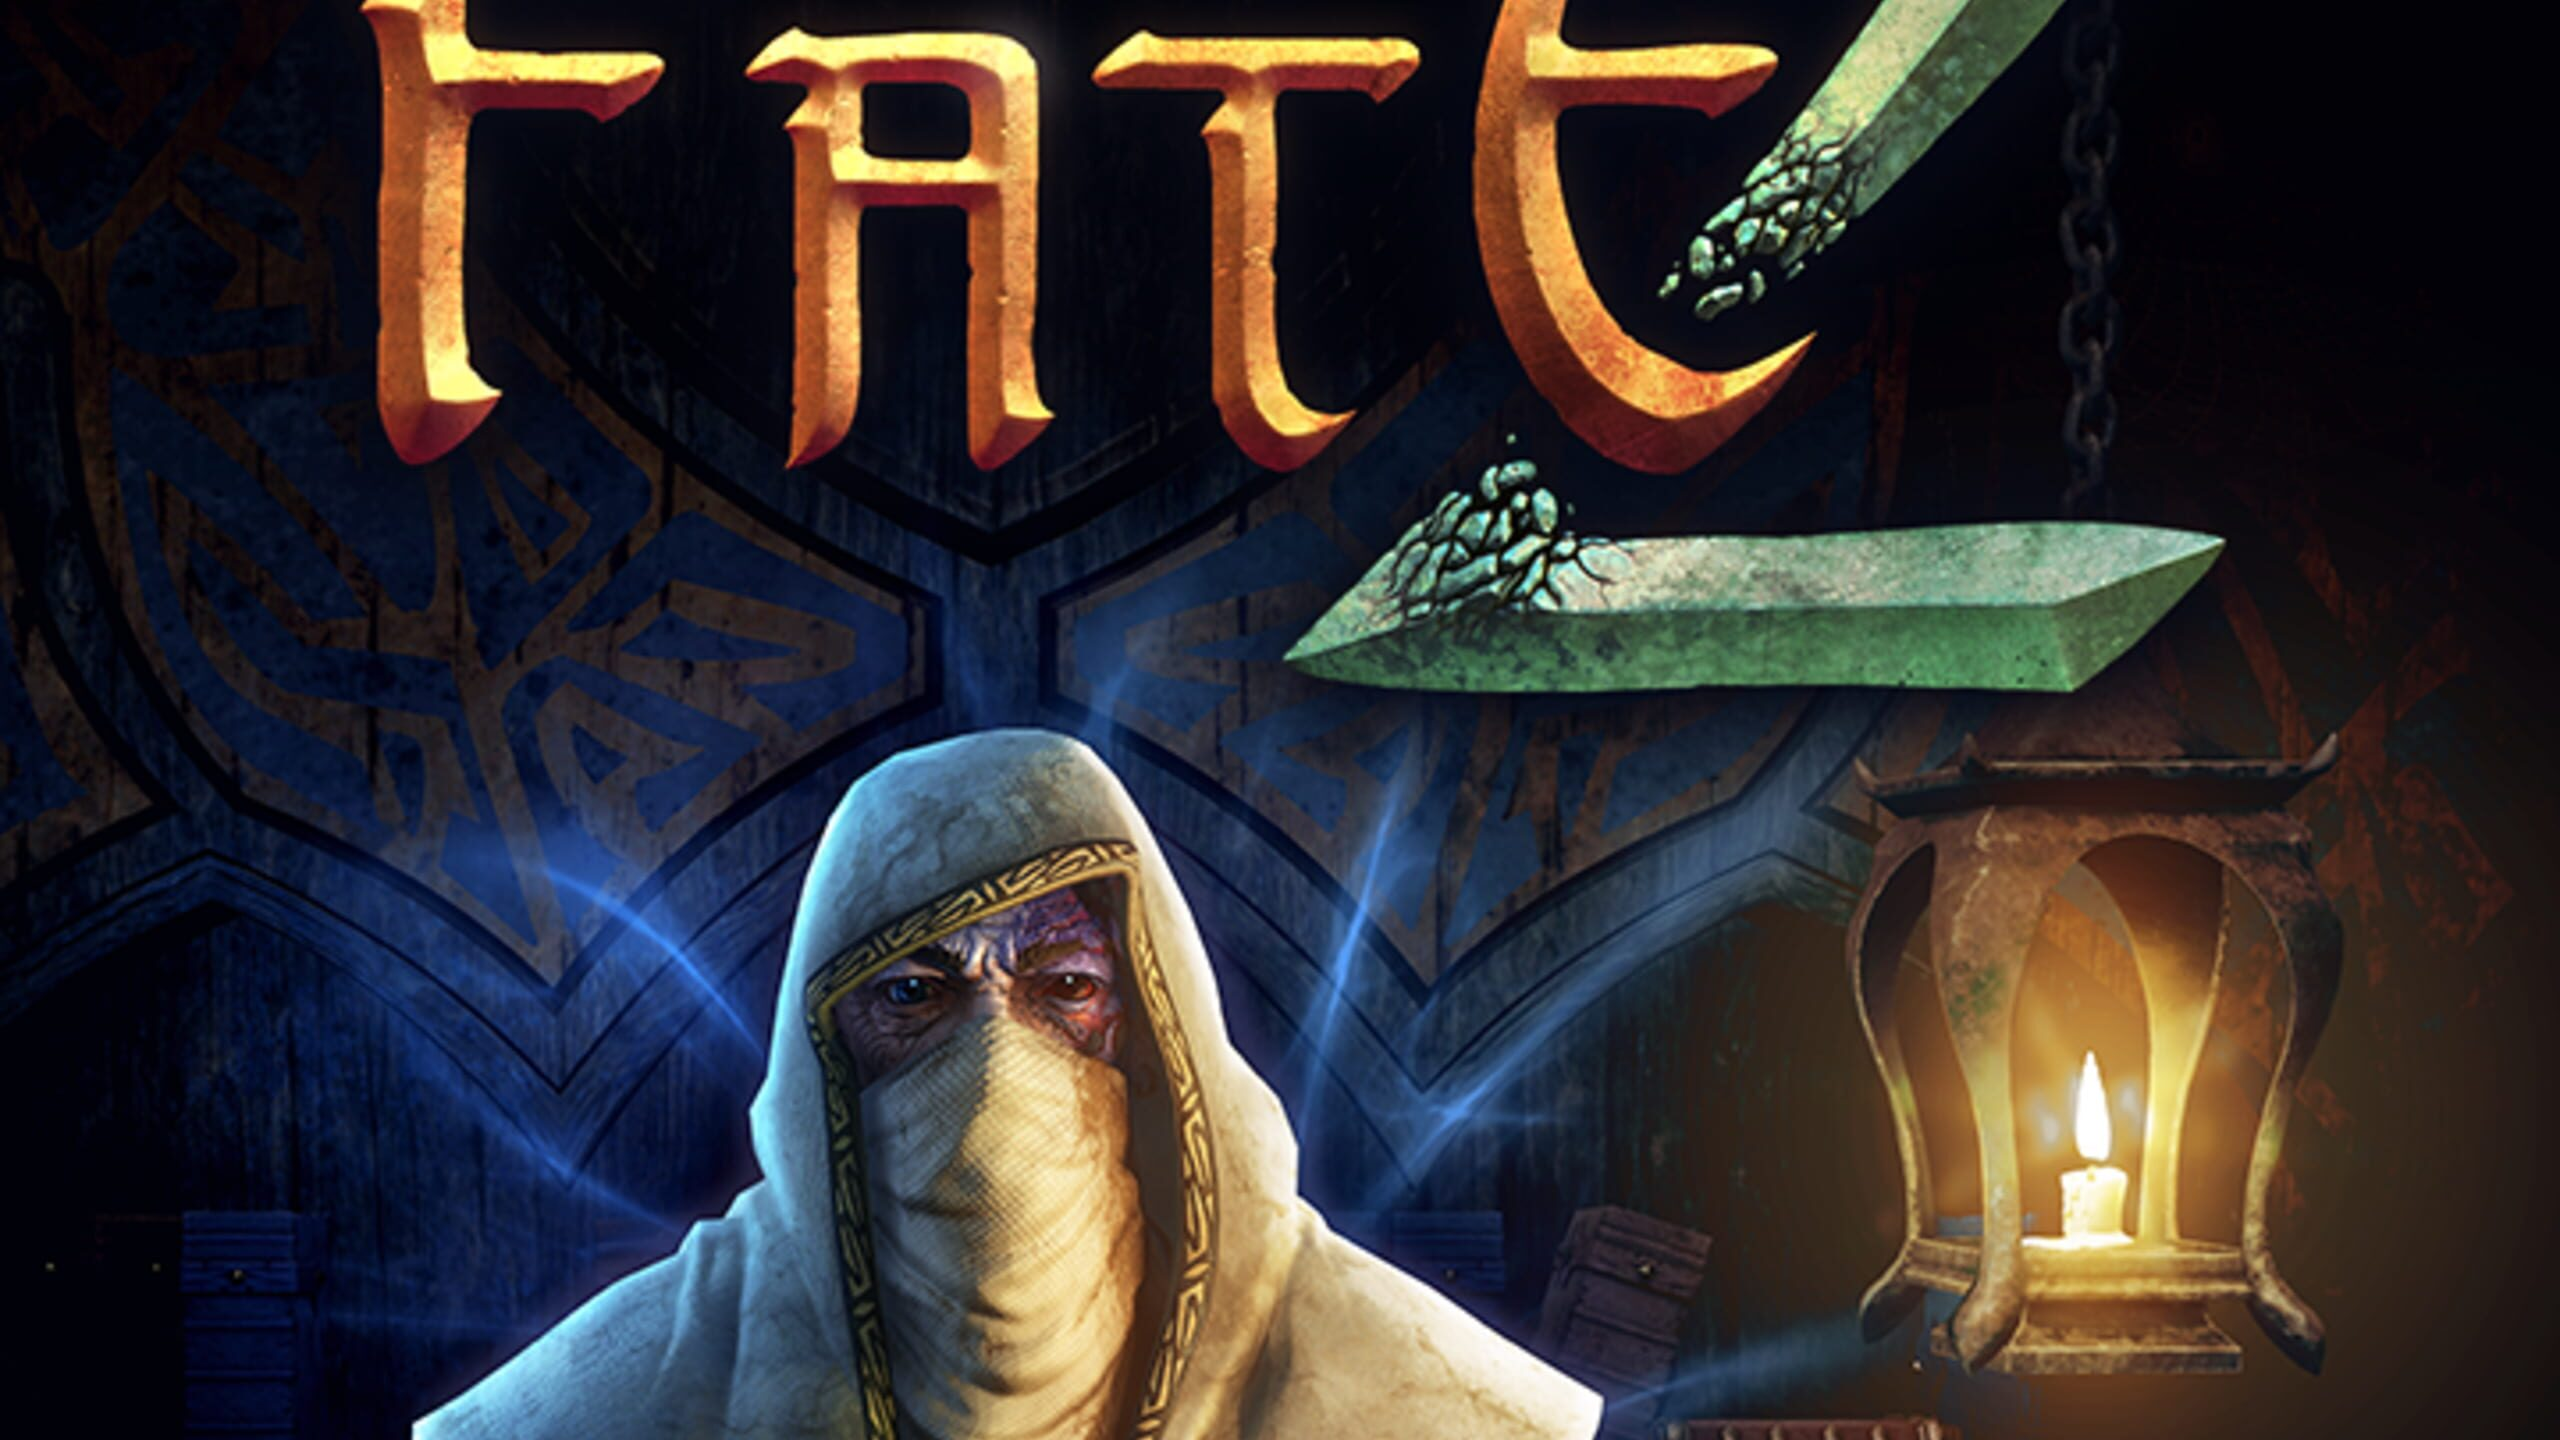 game cover art for Hand of Fate 2